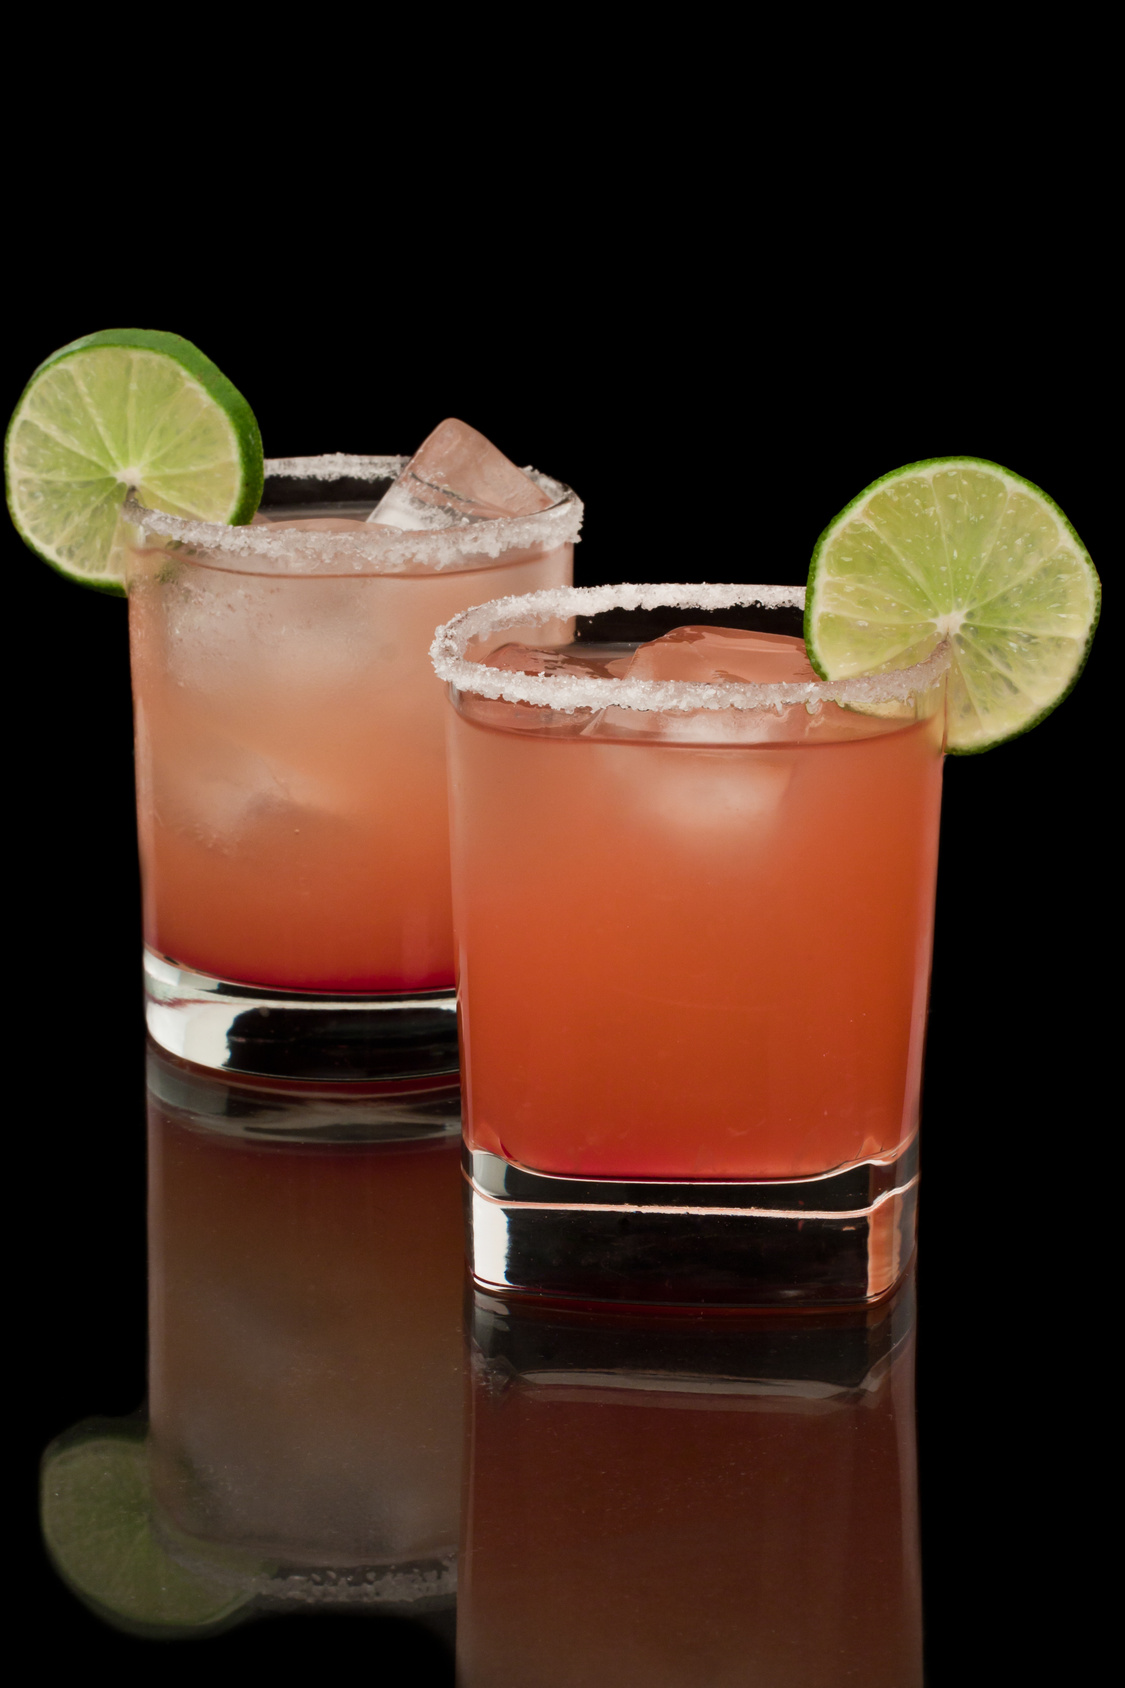 Pink and red drinks on a reflective surface with a salt rim and a lime garnish